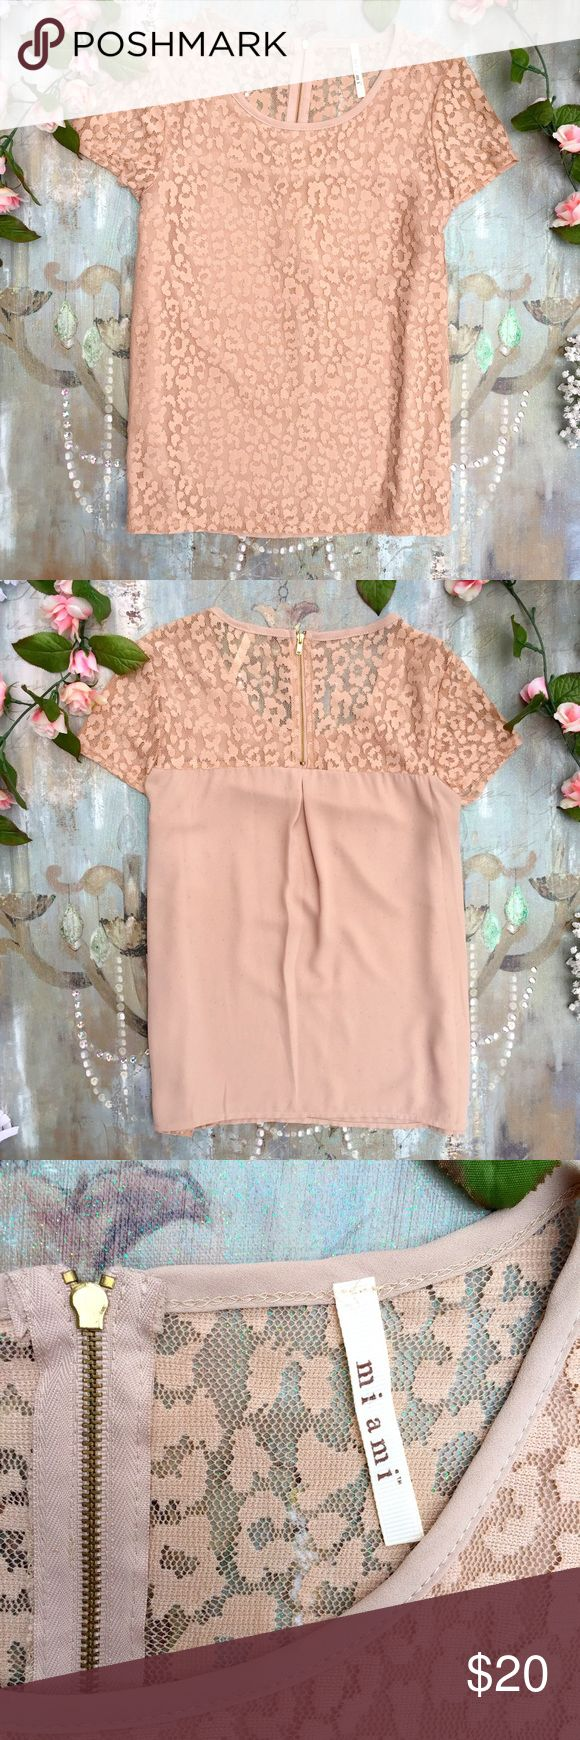 Blouse This peach, cream, tan blouse will fit sizes Small and Medium perfectly!🎀 The Blouse on the front has a lace cheetah print and it is lined so it is not see through!💕 The back falls down so elegantly and there is a zipper at the top for easy removing and dressing!😊 This top has Never been worn and is in Perfect Condition!💐 NWOT!🌸 Miami Tops Blouses